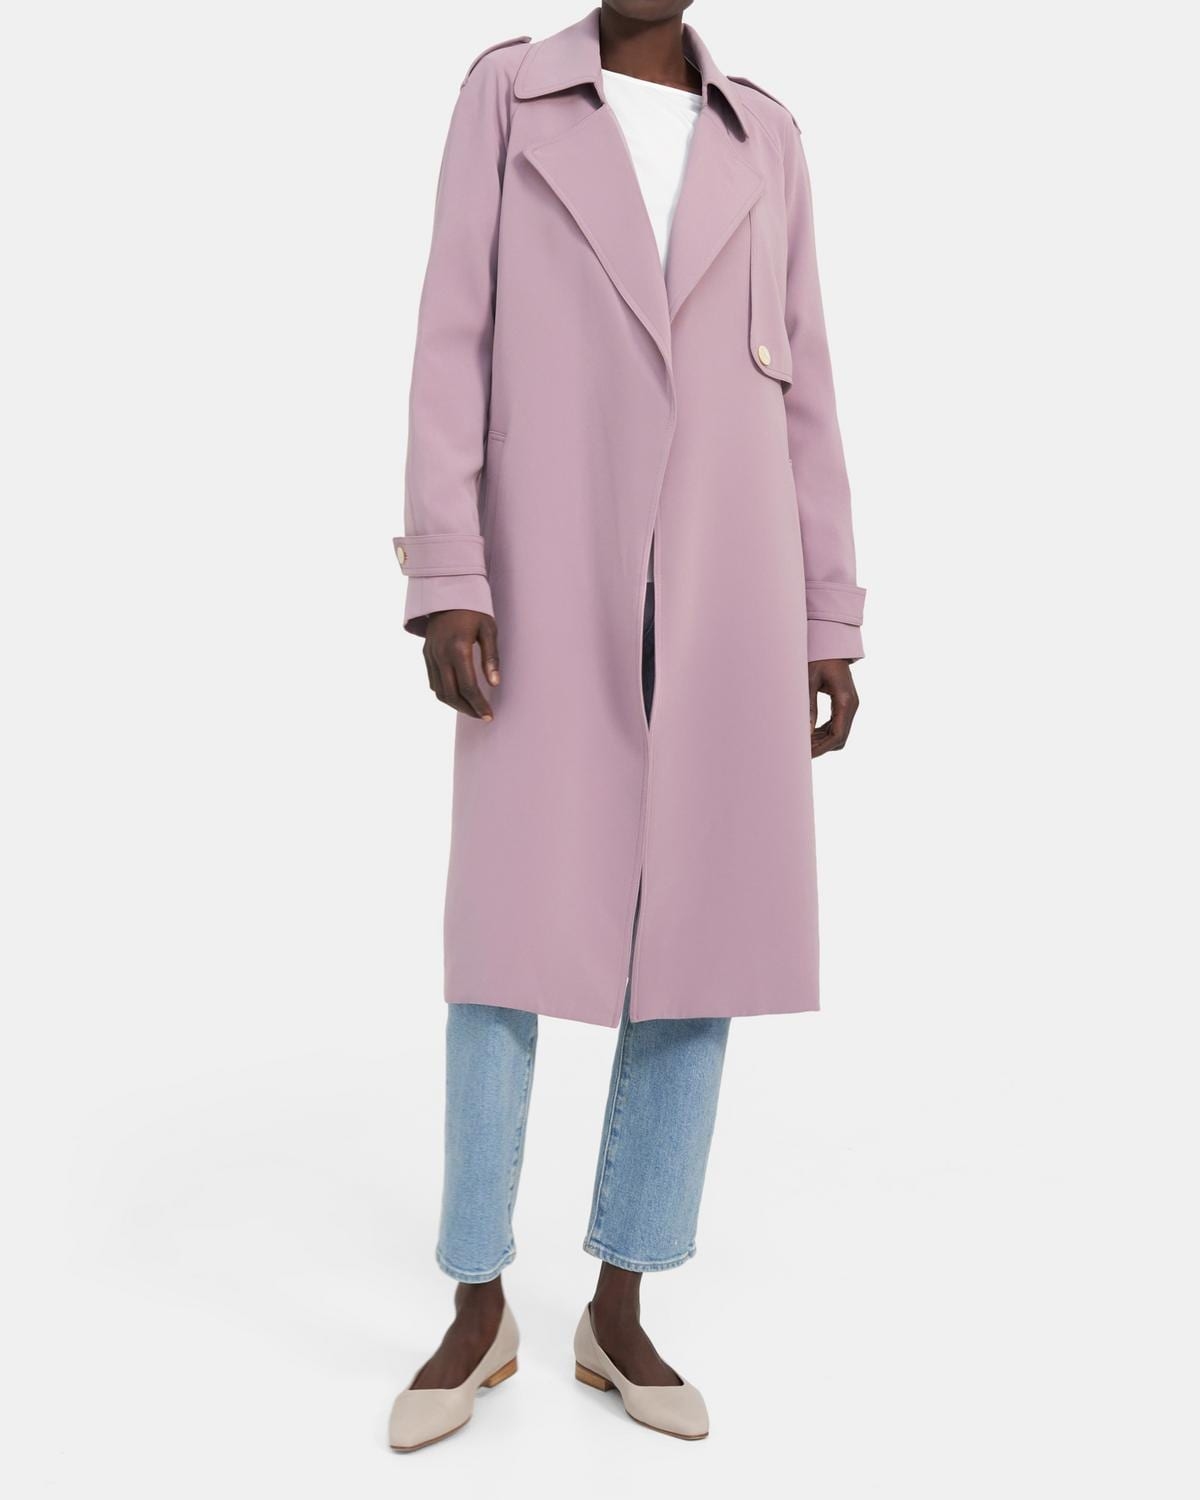 Theory Outlet: Up to 80% off + Extra 10% off flash sale!